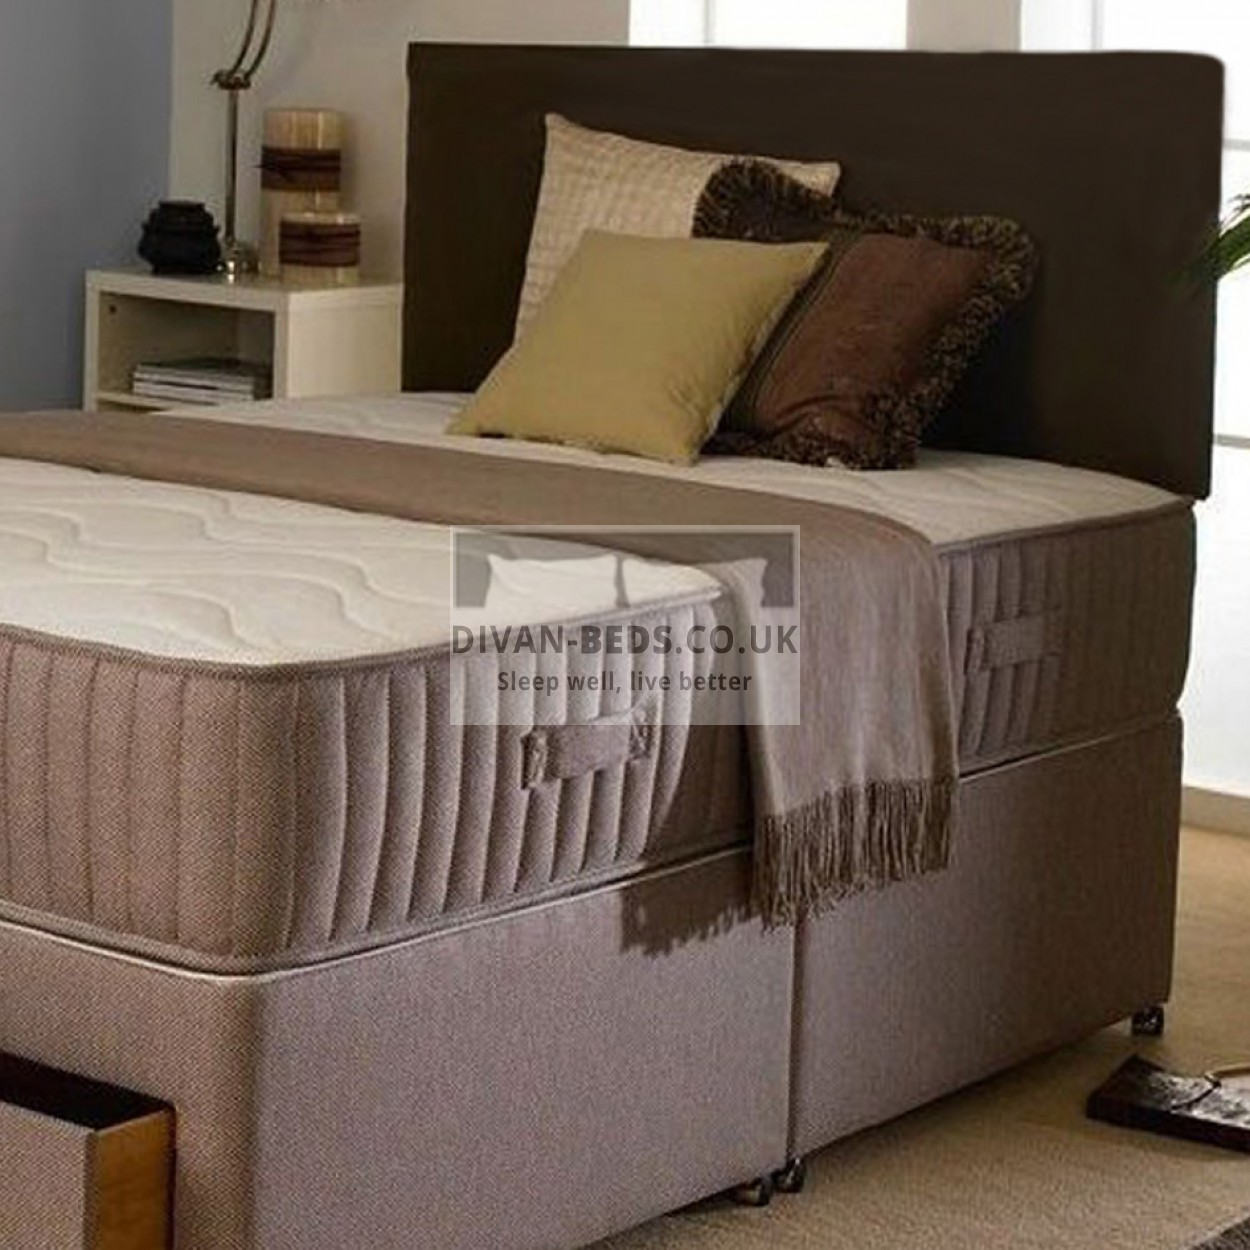 Marlo divan bed with orthopaedic spring mattress for Orthopedic divan beds